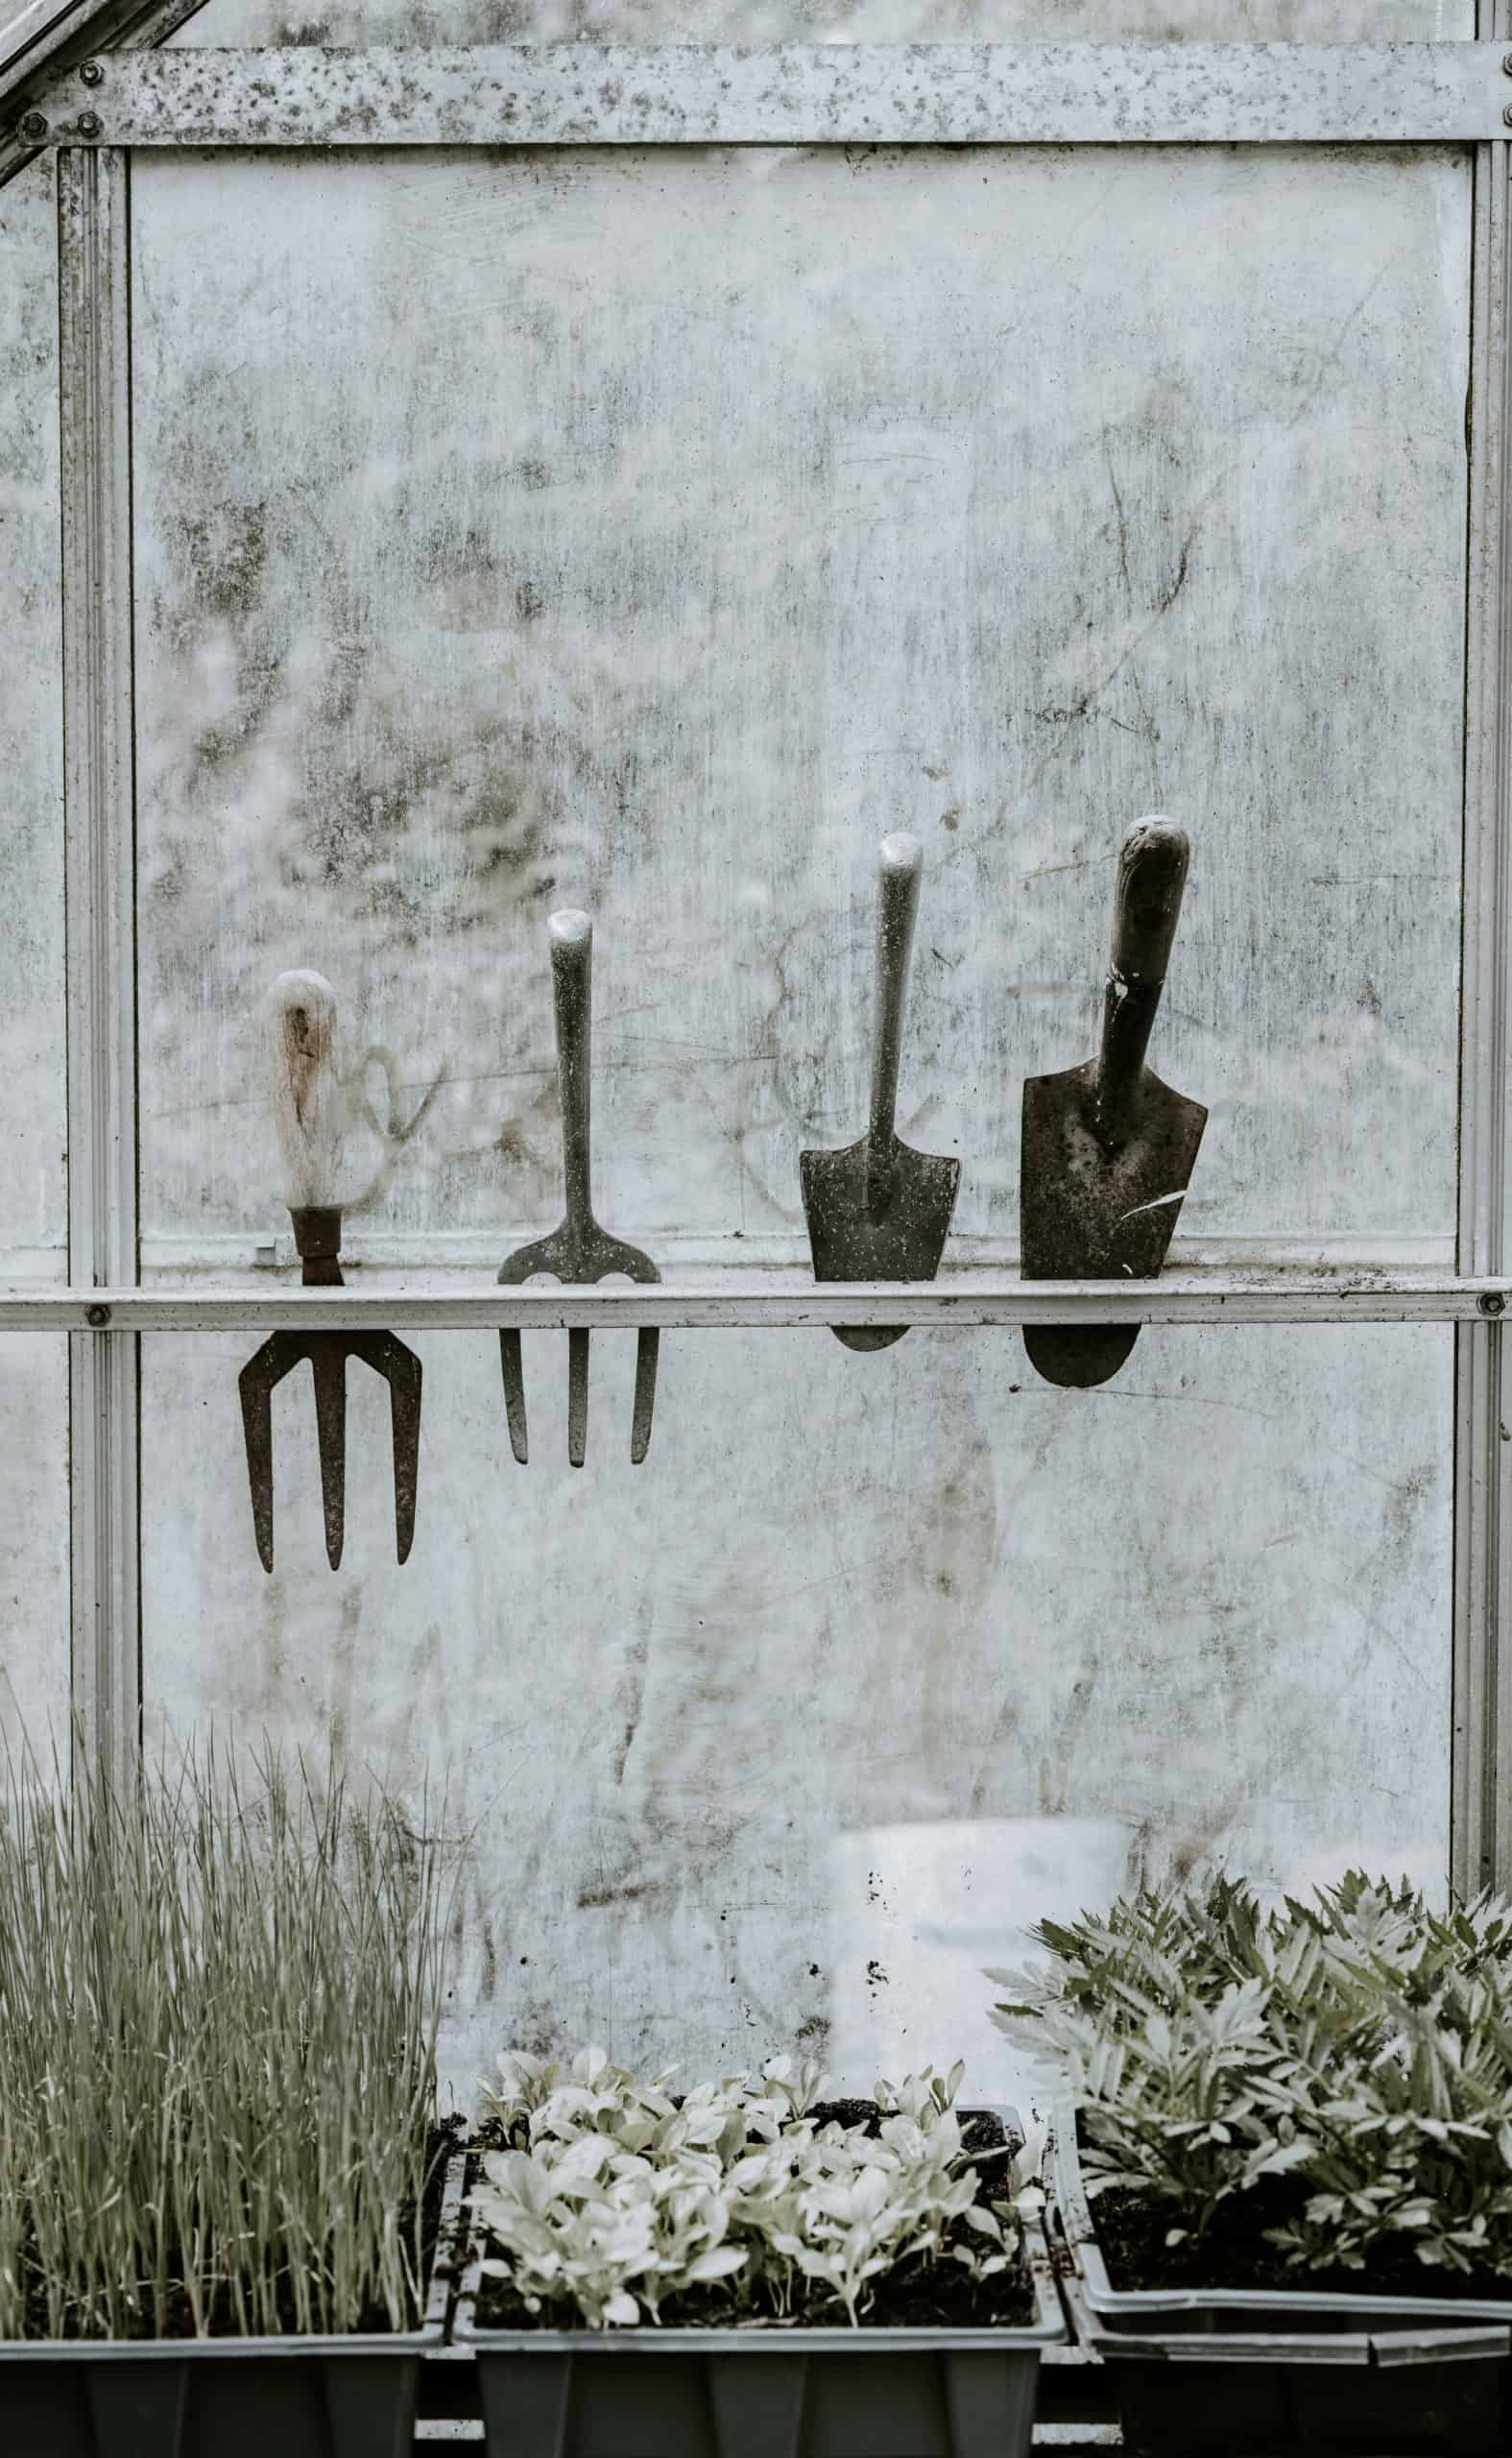 Tools For Best Garden: Require To Maintain